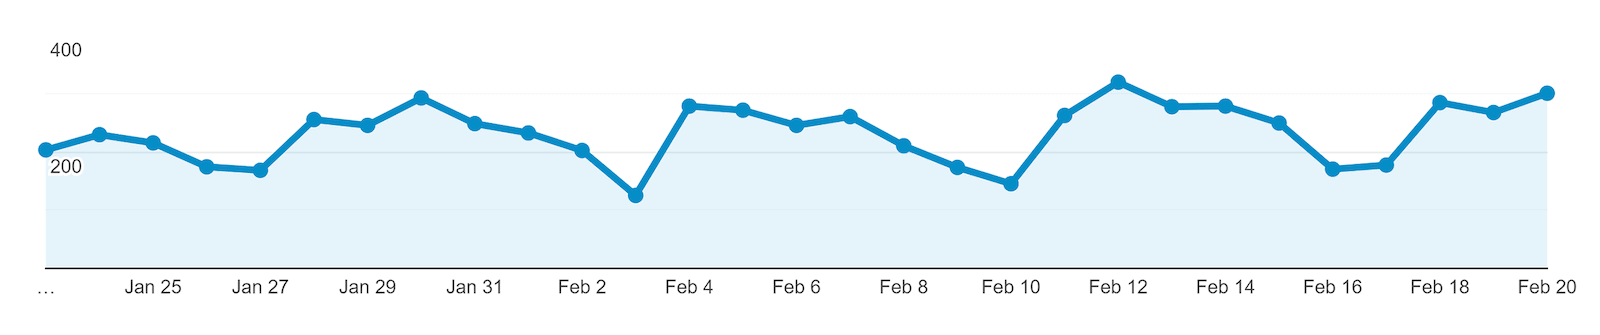 Google Analytics variation in Organic Traffic